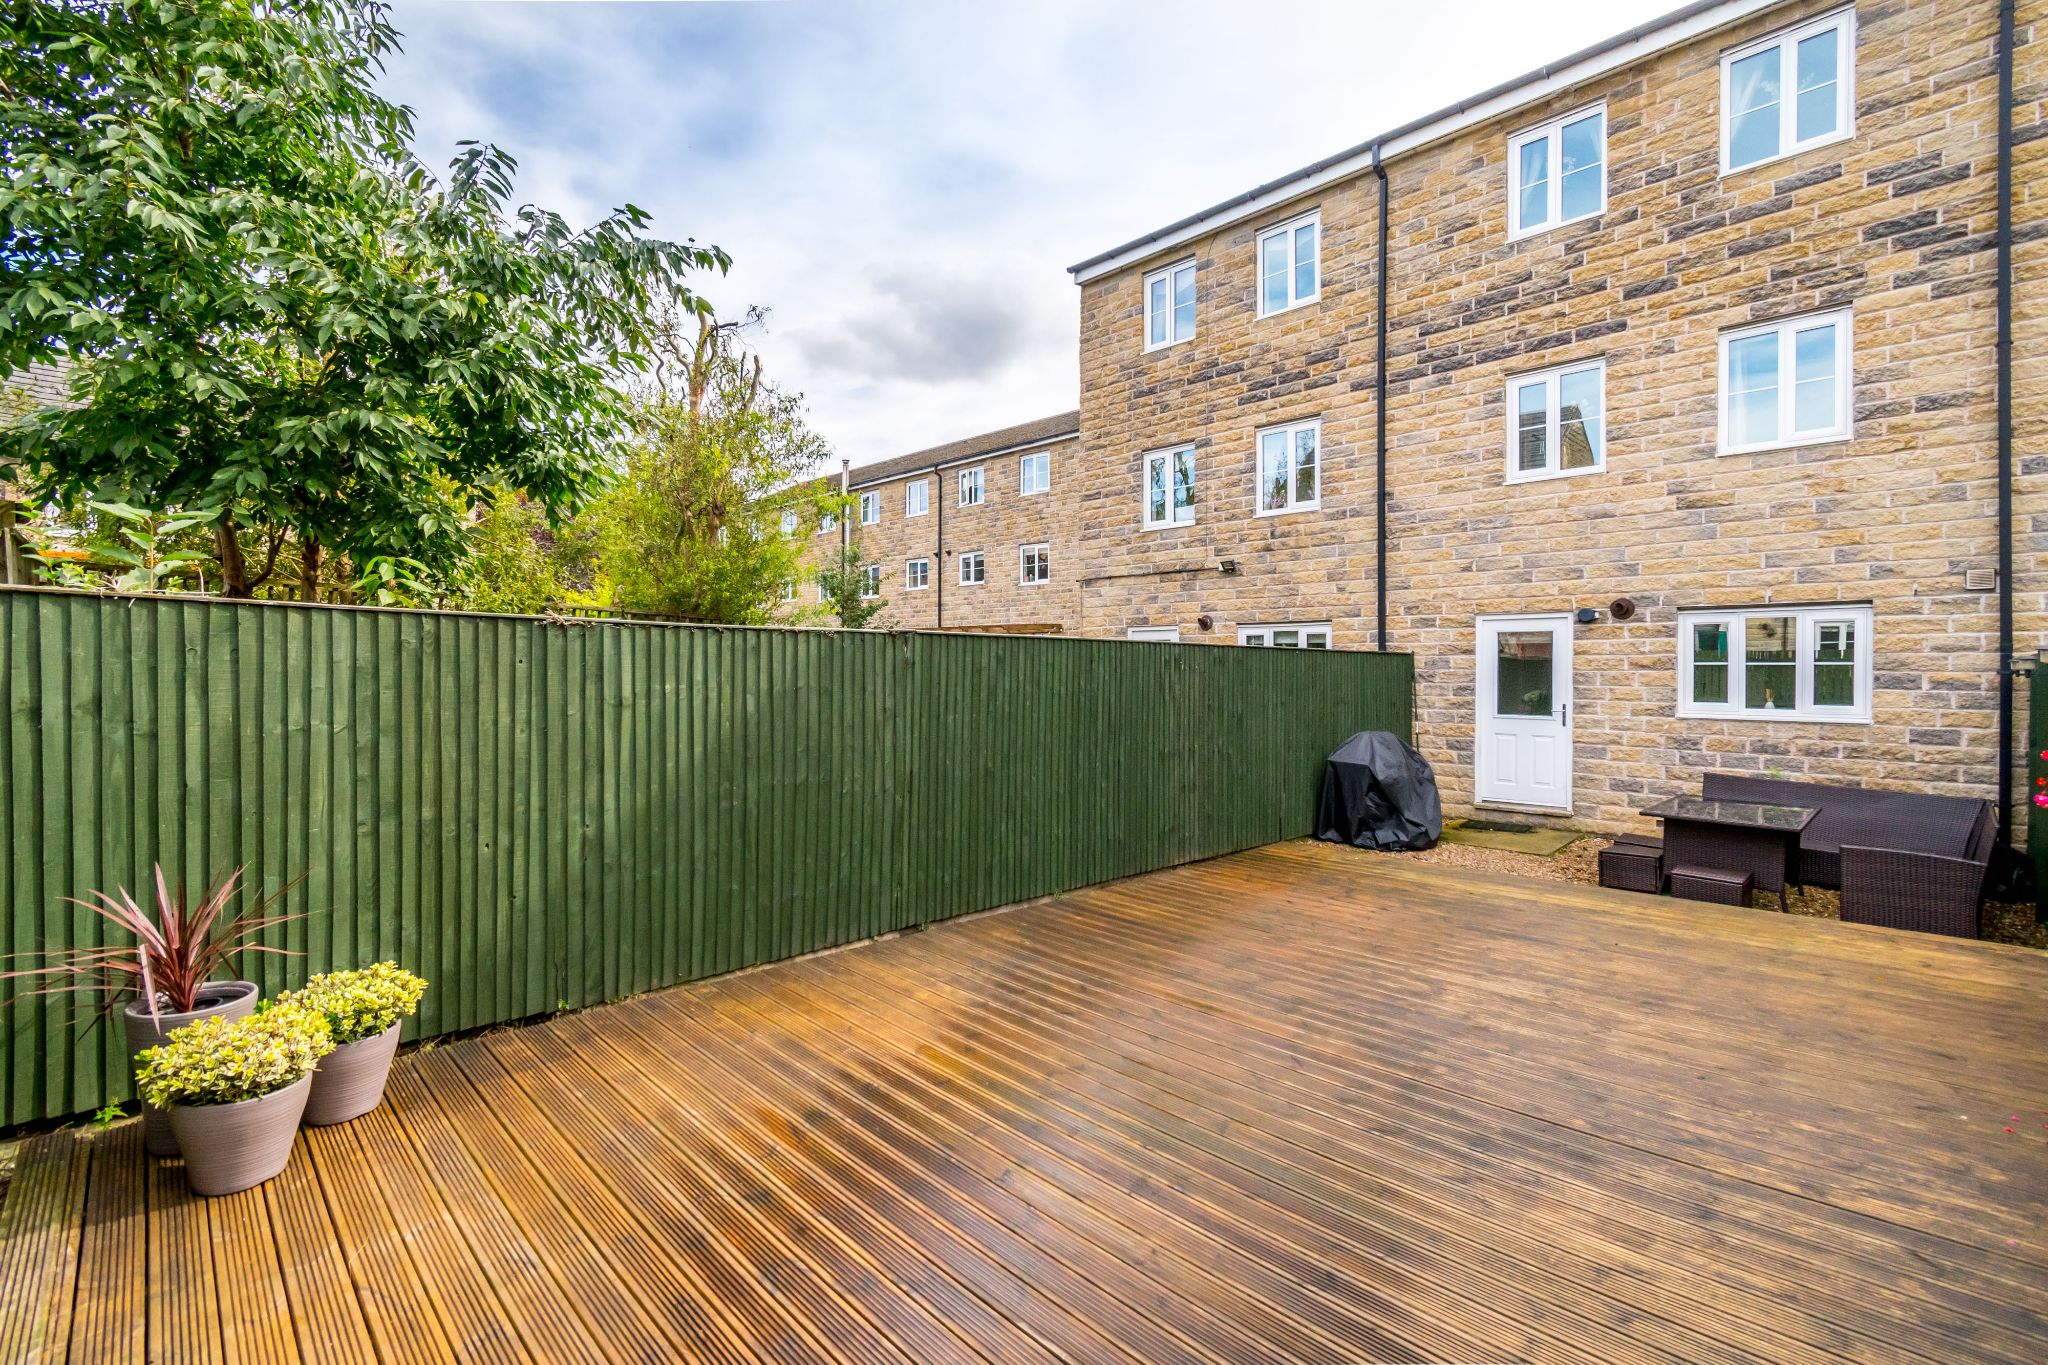 4 bedroom mid terraced house SSTC in Brighouse - Photograph 24